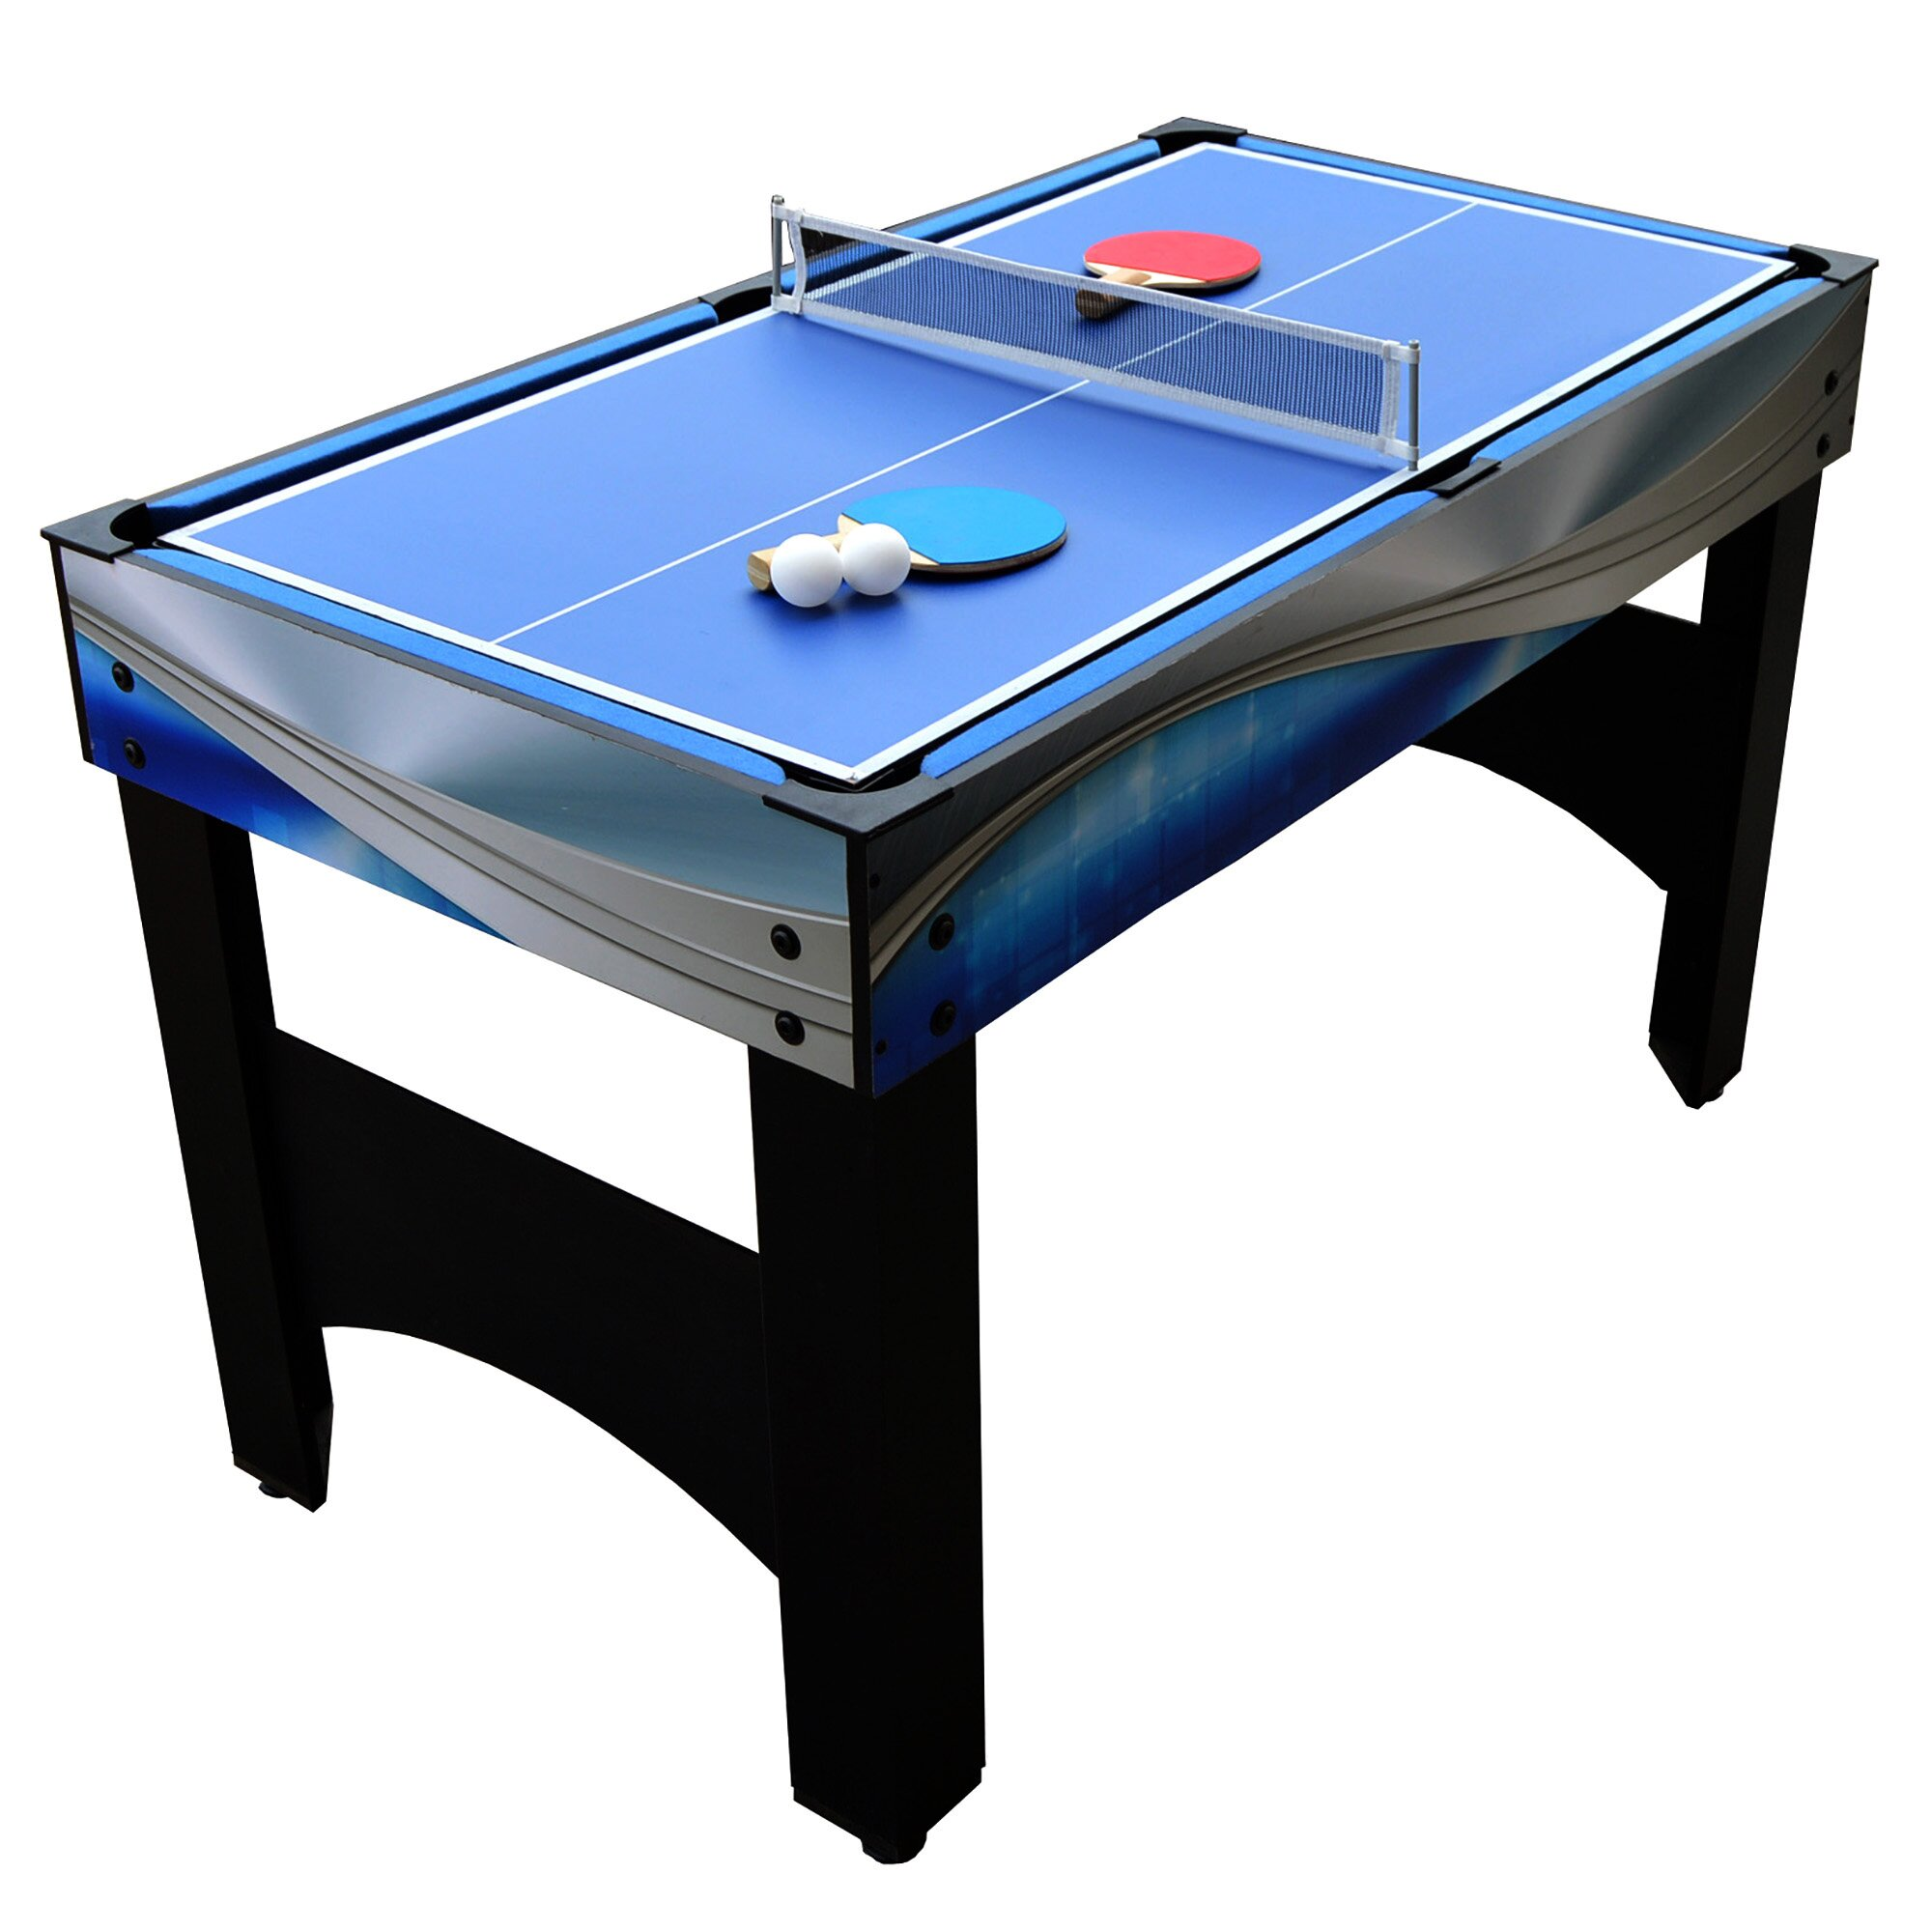 Hathaway games matrix 7 in 1 multi game table reviews for 12 in 1 game table walmart